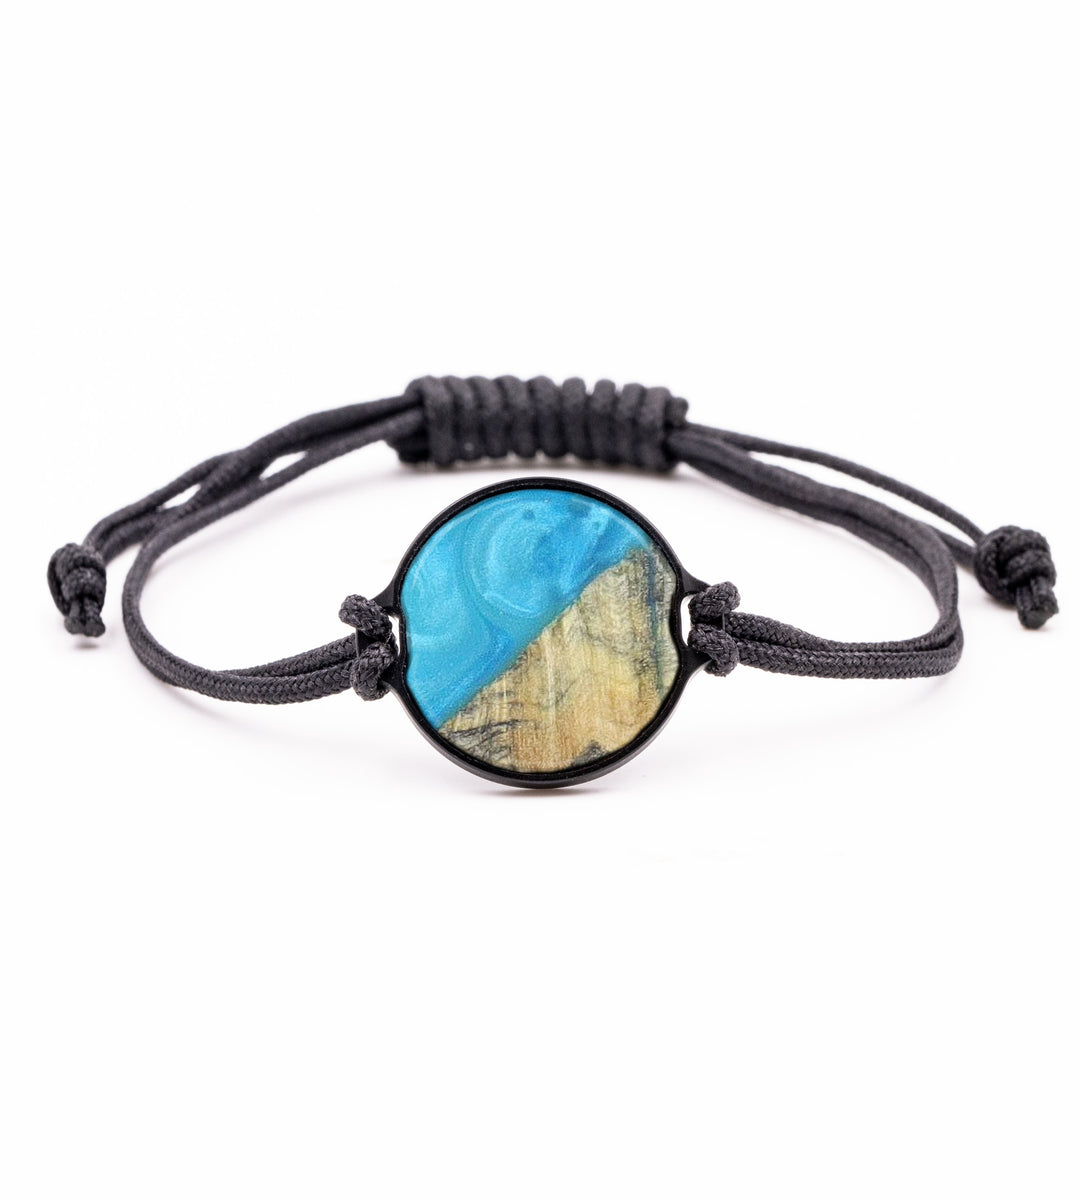 Circle Wood+Resin Bracelet - Shuang (Light Blue, 423192)